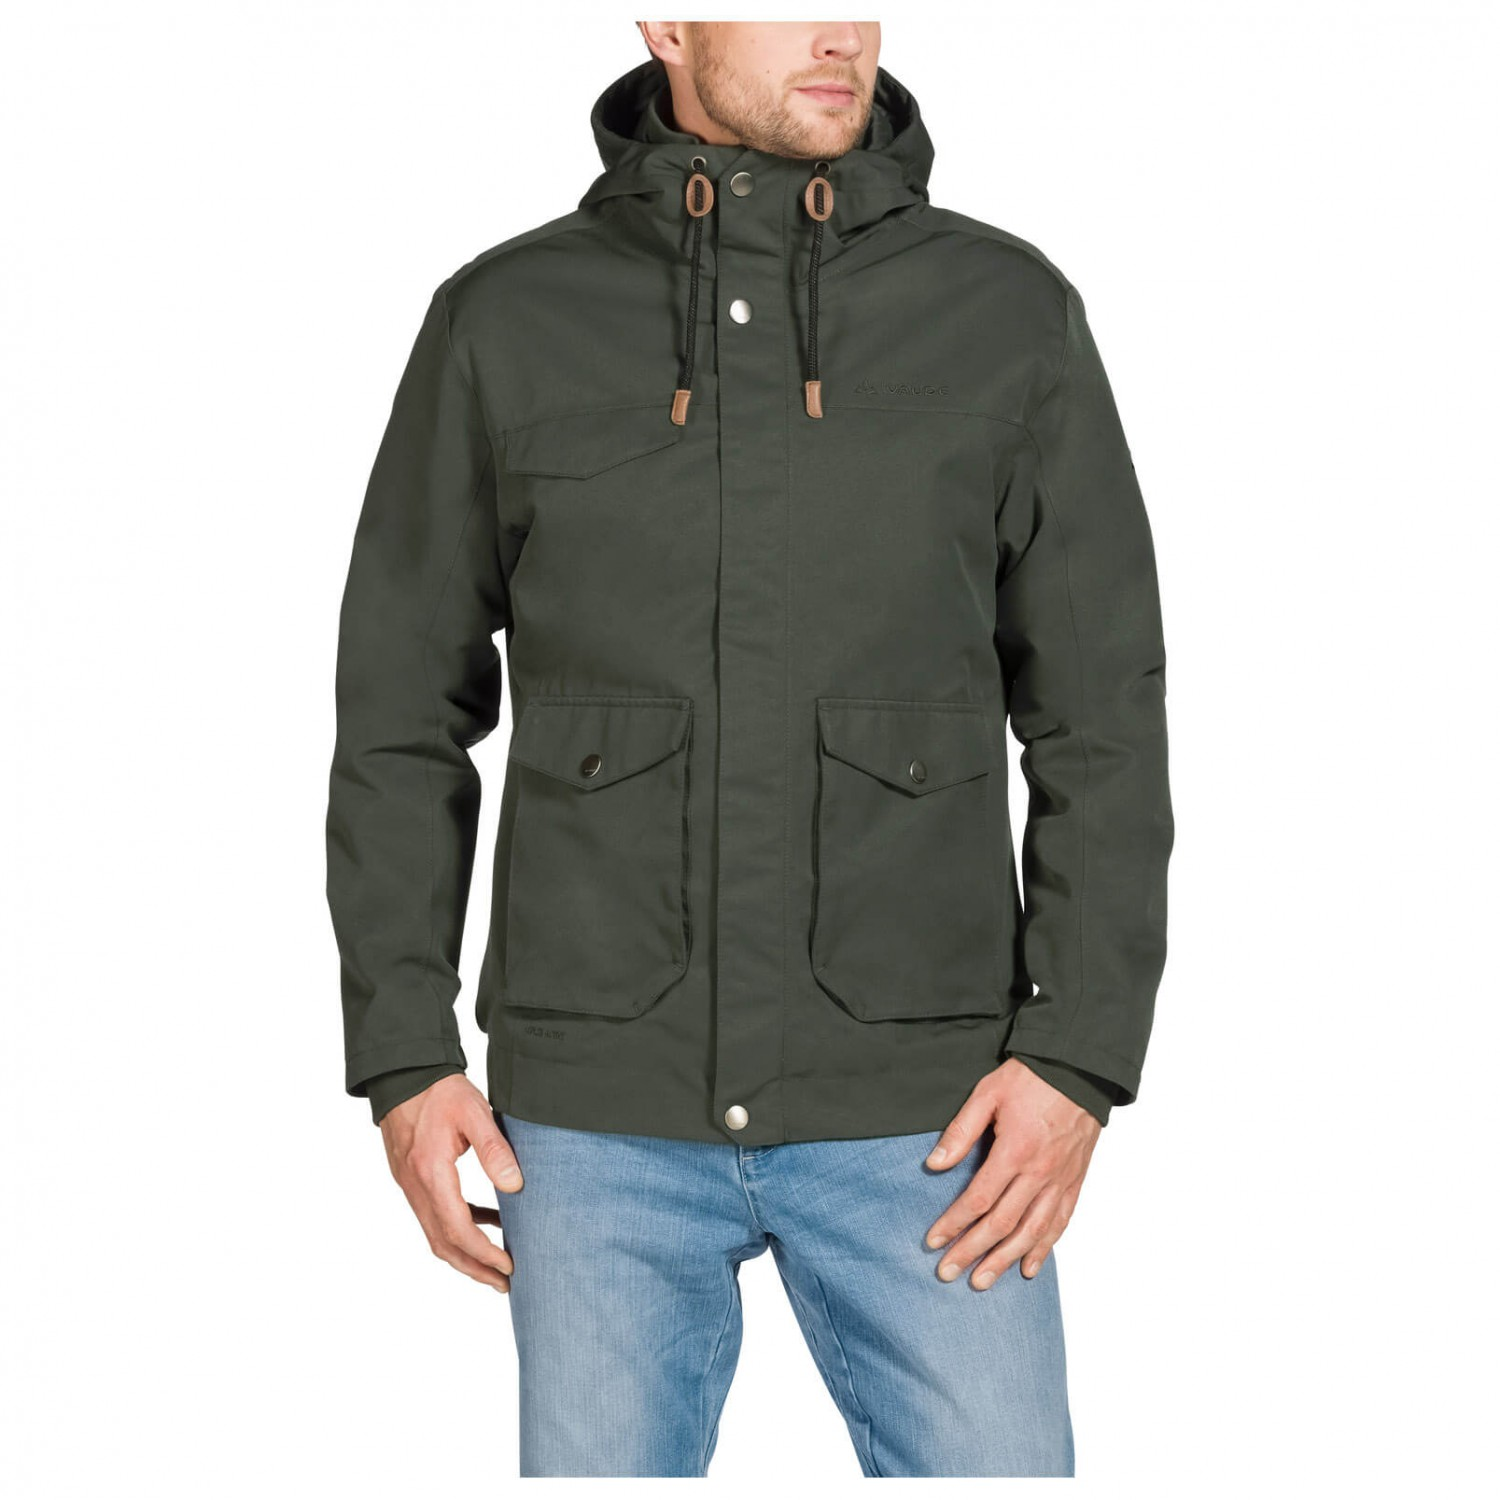 Vaude winterjacke bike